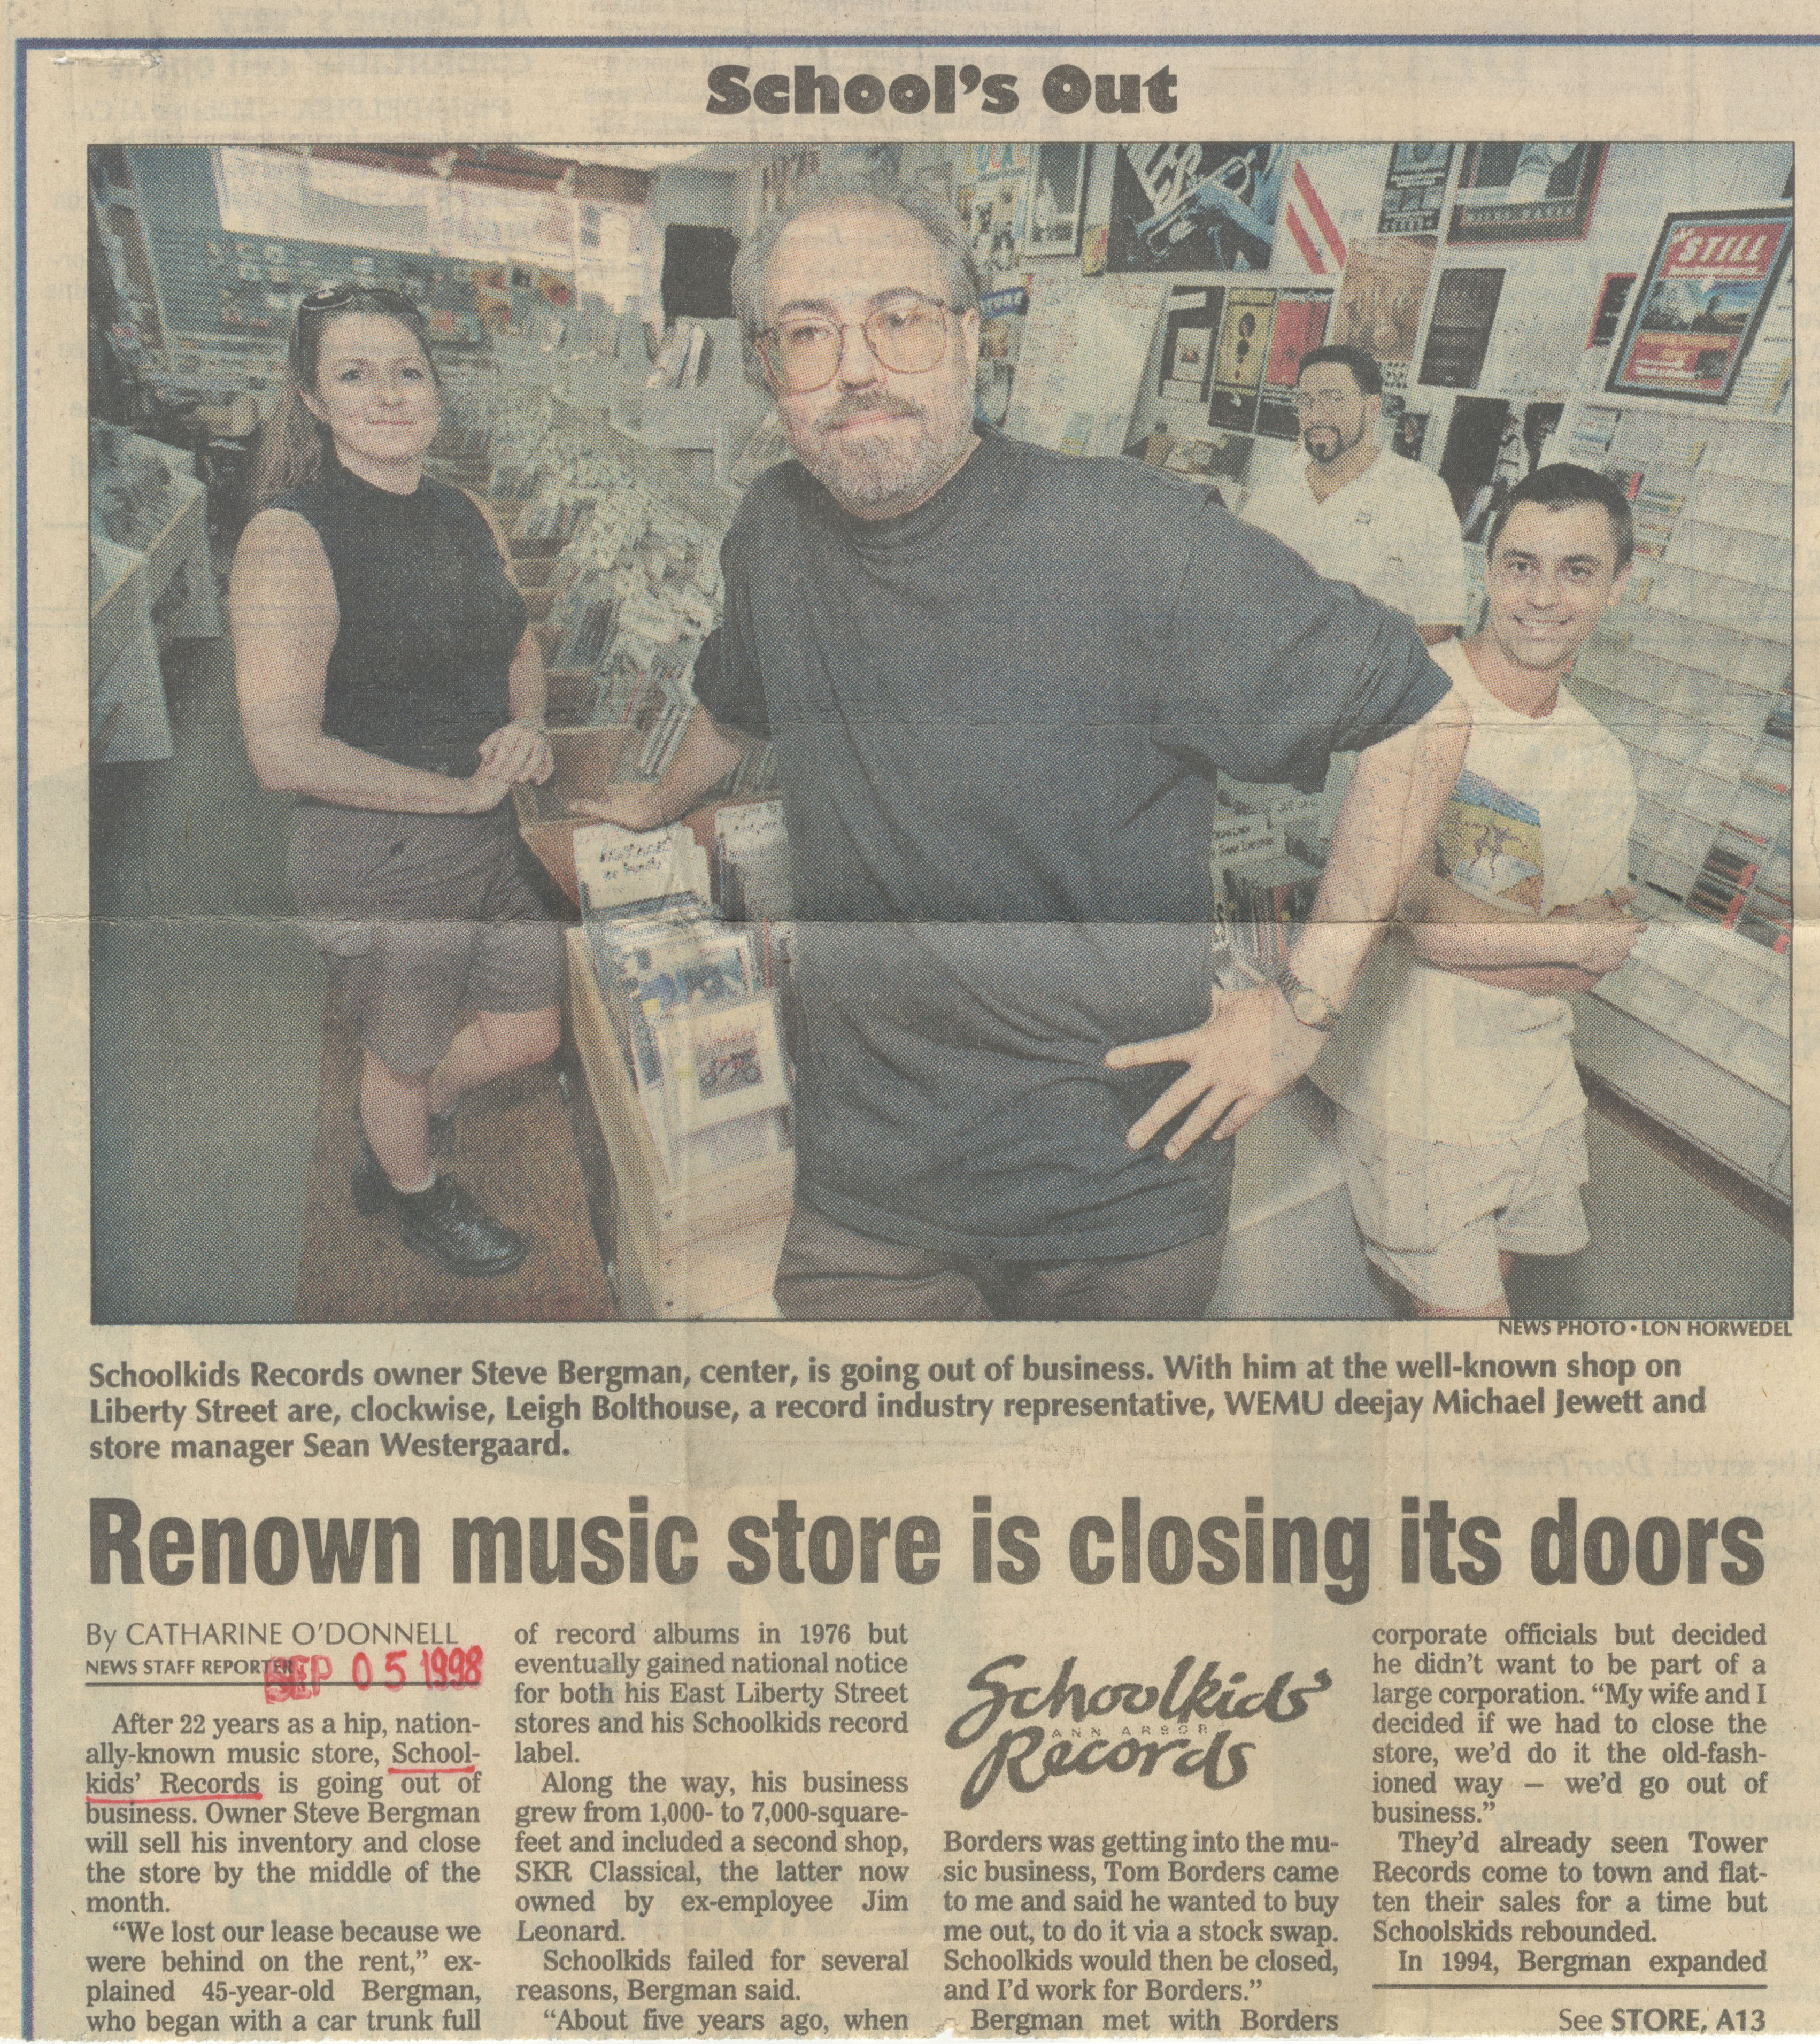 Renown Music Store Is Closing Its Doors image